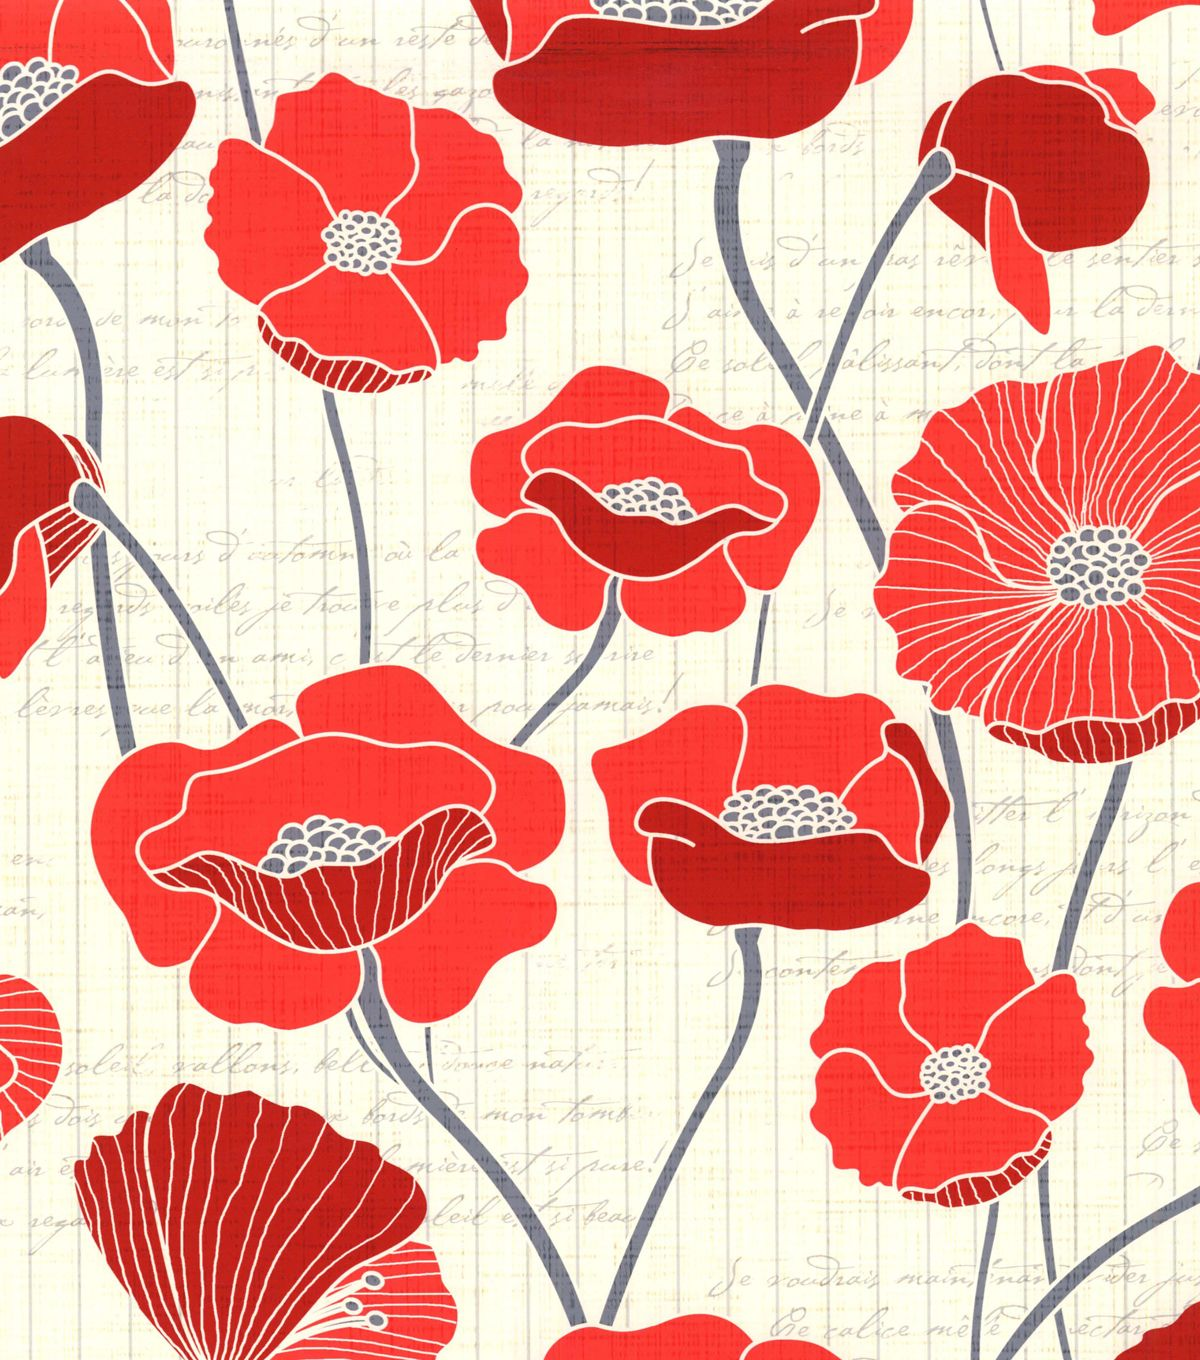 Patty Young Premium Quilt Fabric-Vintage Poppies Red at Joann.com ...